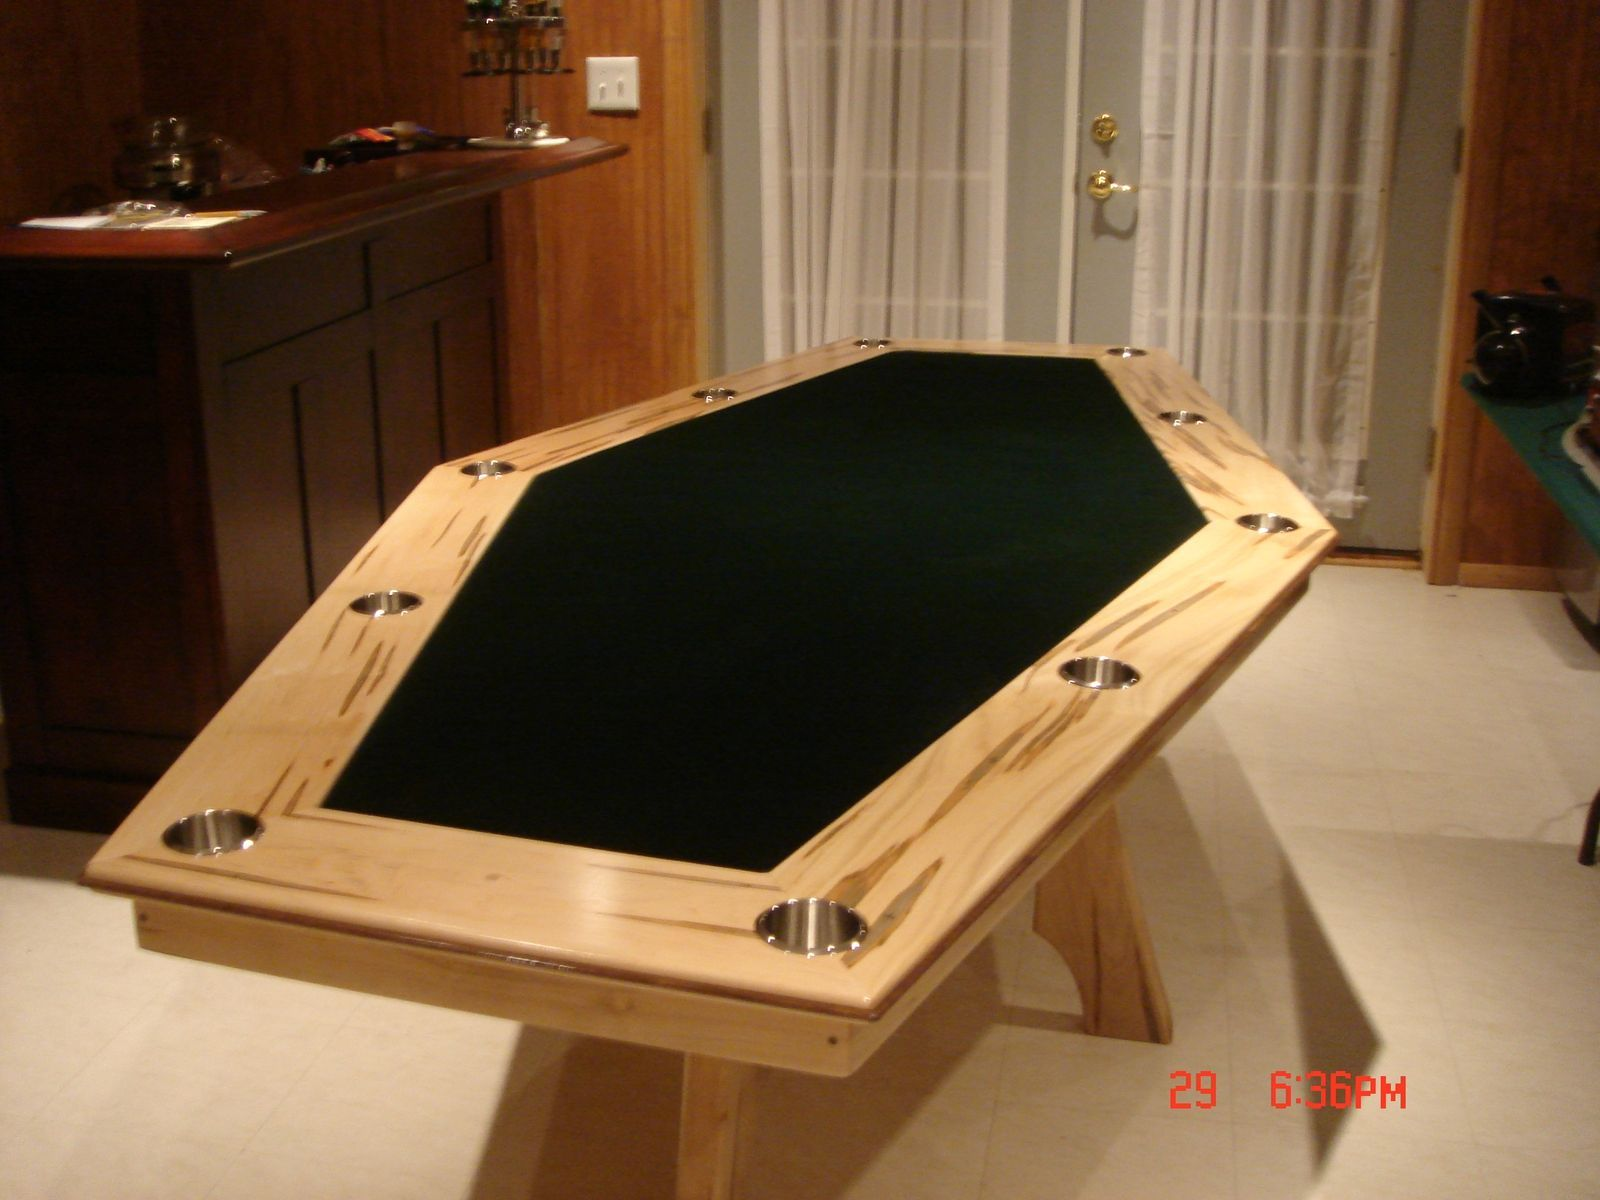 eaa lowest snooker makro coin online tables specials br pool table game min operated prices